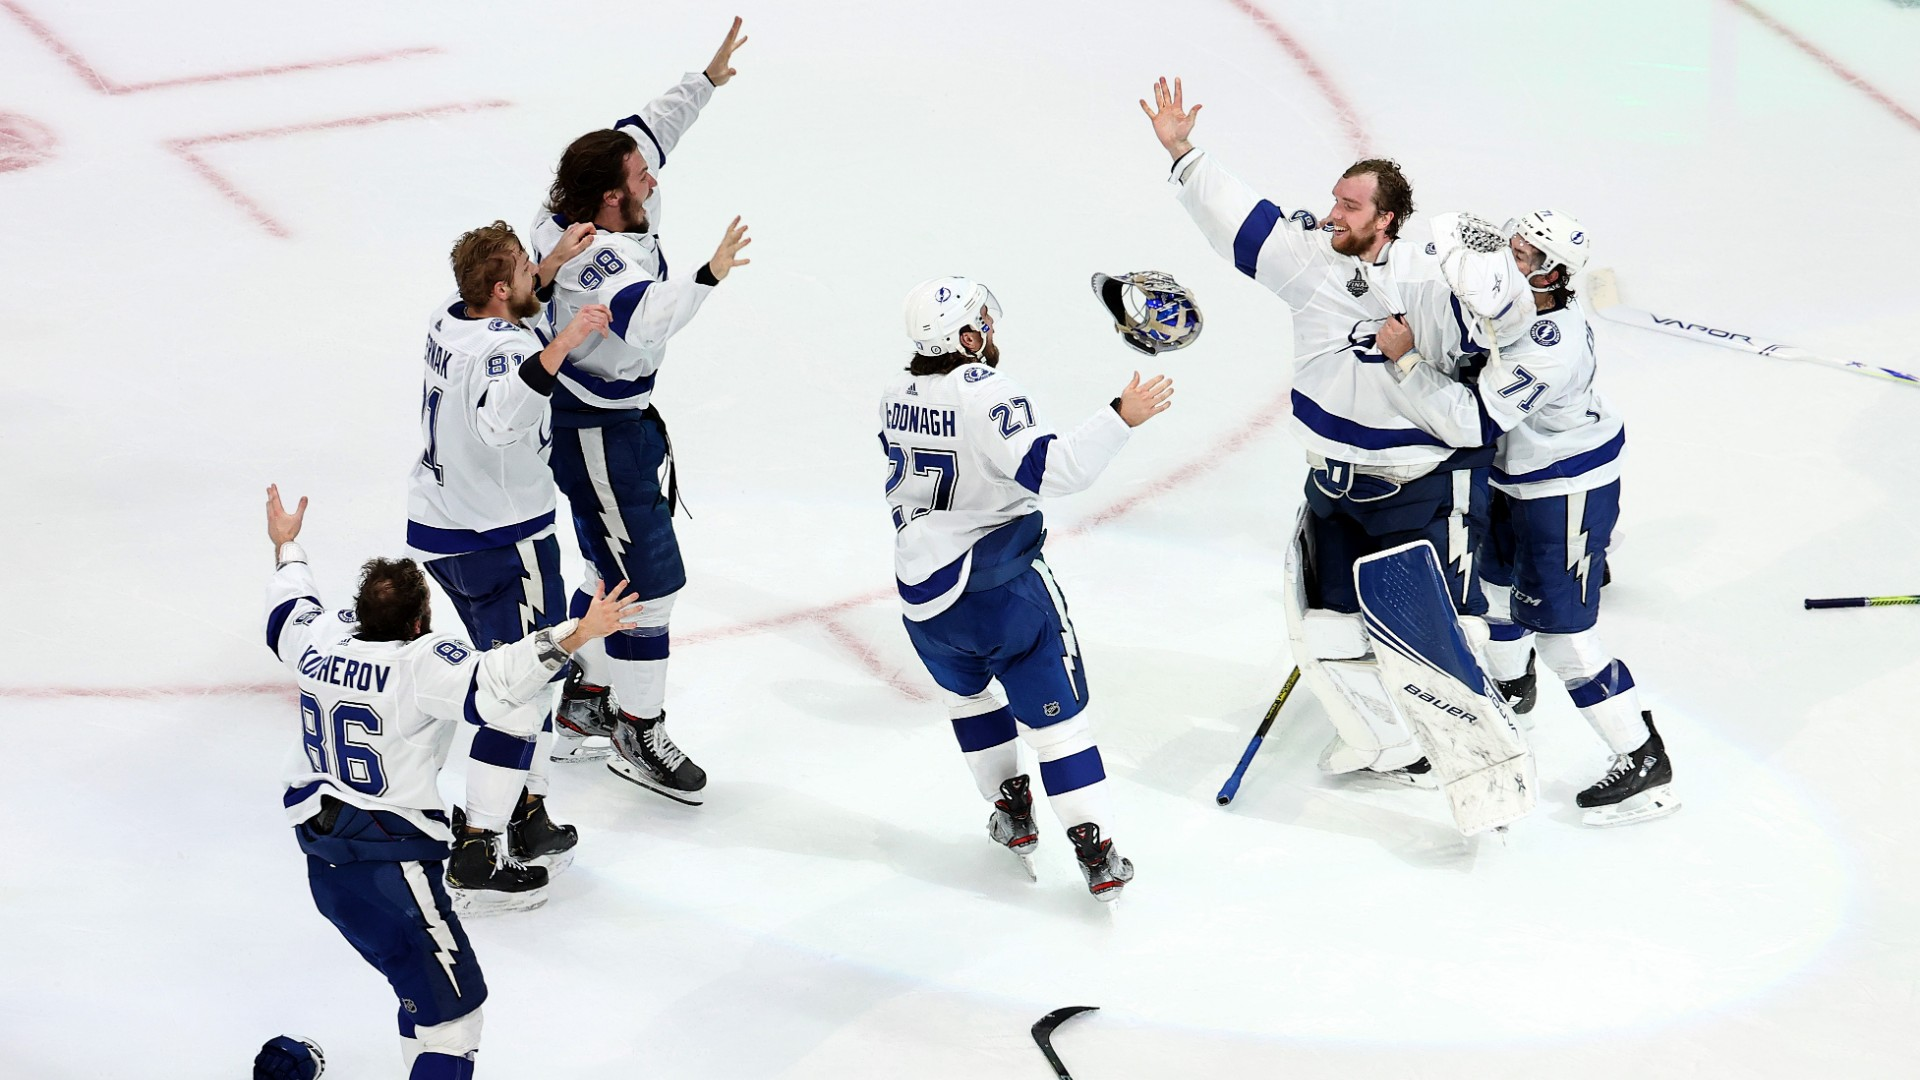 Lightning vs. Stars Game 6: Tampa Bay wins 2020 Stanley Cup 1